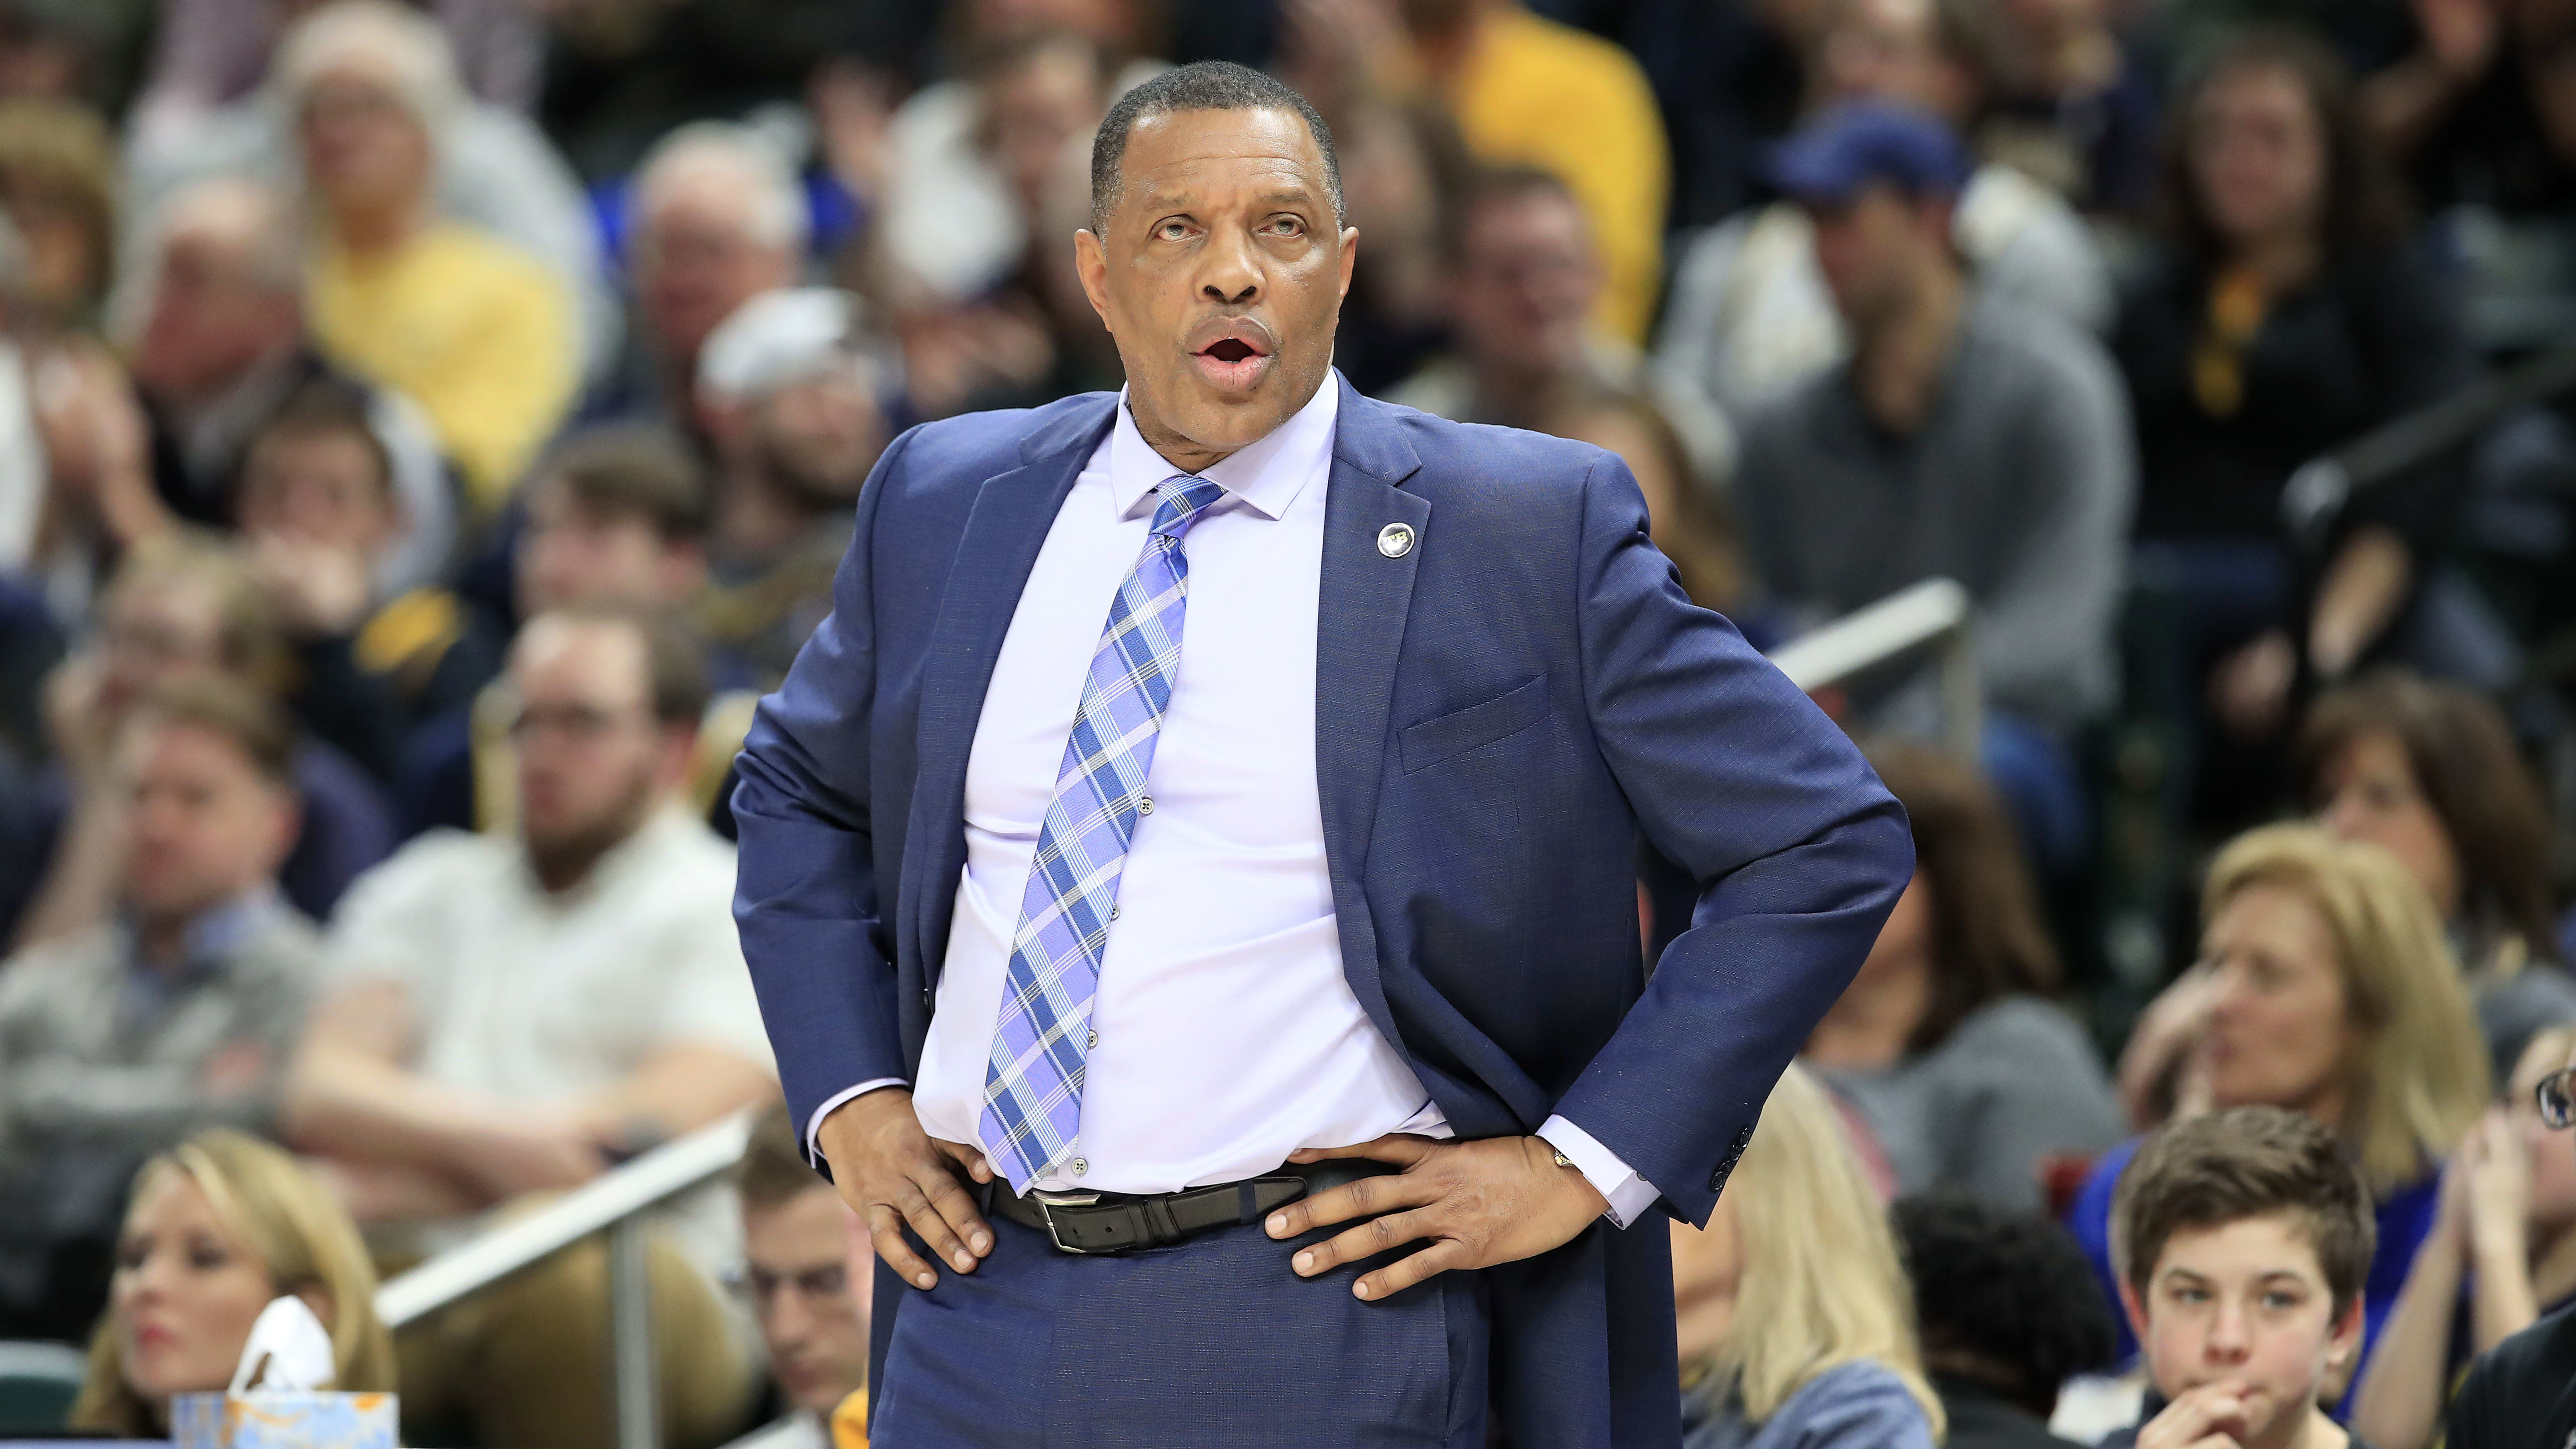 INDIANAPOLIS, INDIANA - FEBRUARY 22:   Alvin Gentry the head coach of the New Orleans Pelicans gives instructions to his team against the Indiana Pacers at Bankers Life Fieldhouse on February 22, 2019 in Indianapolis, Indiana. (Photo by Andy Lyons/Getty Images)